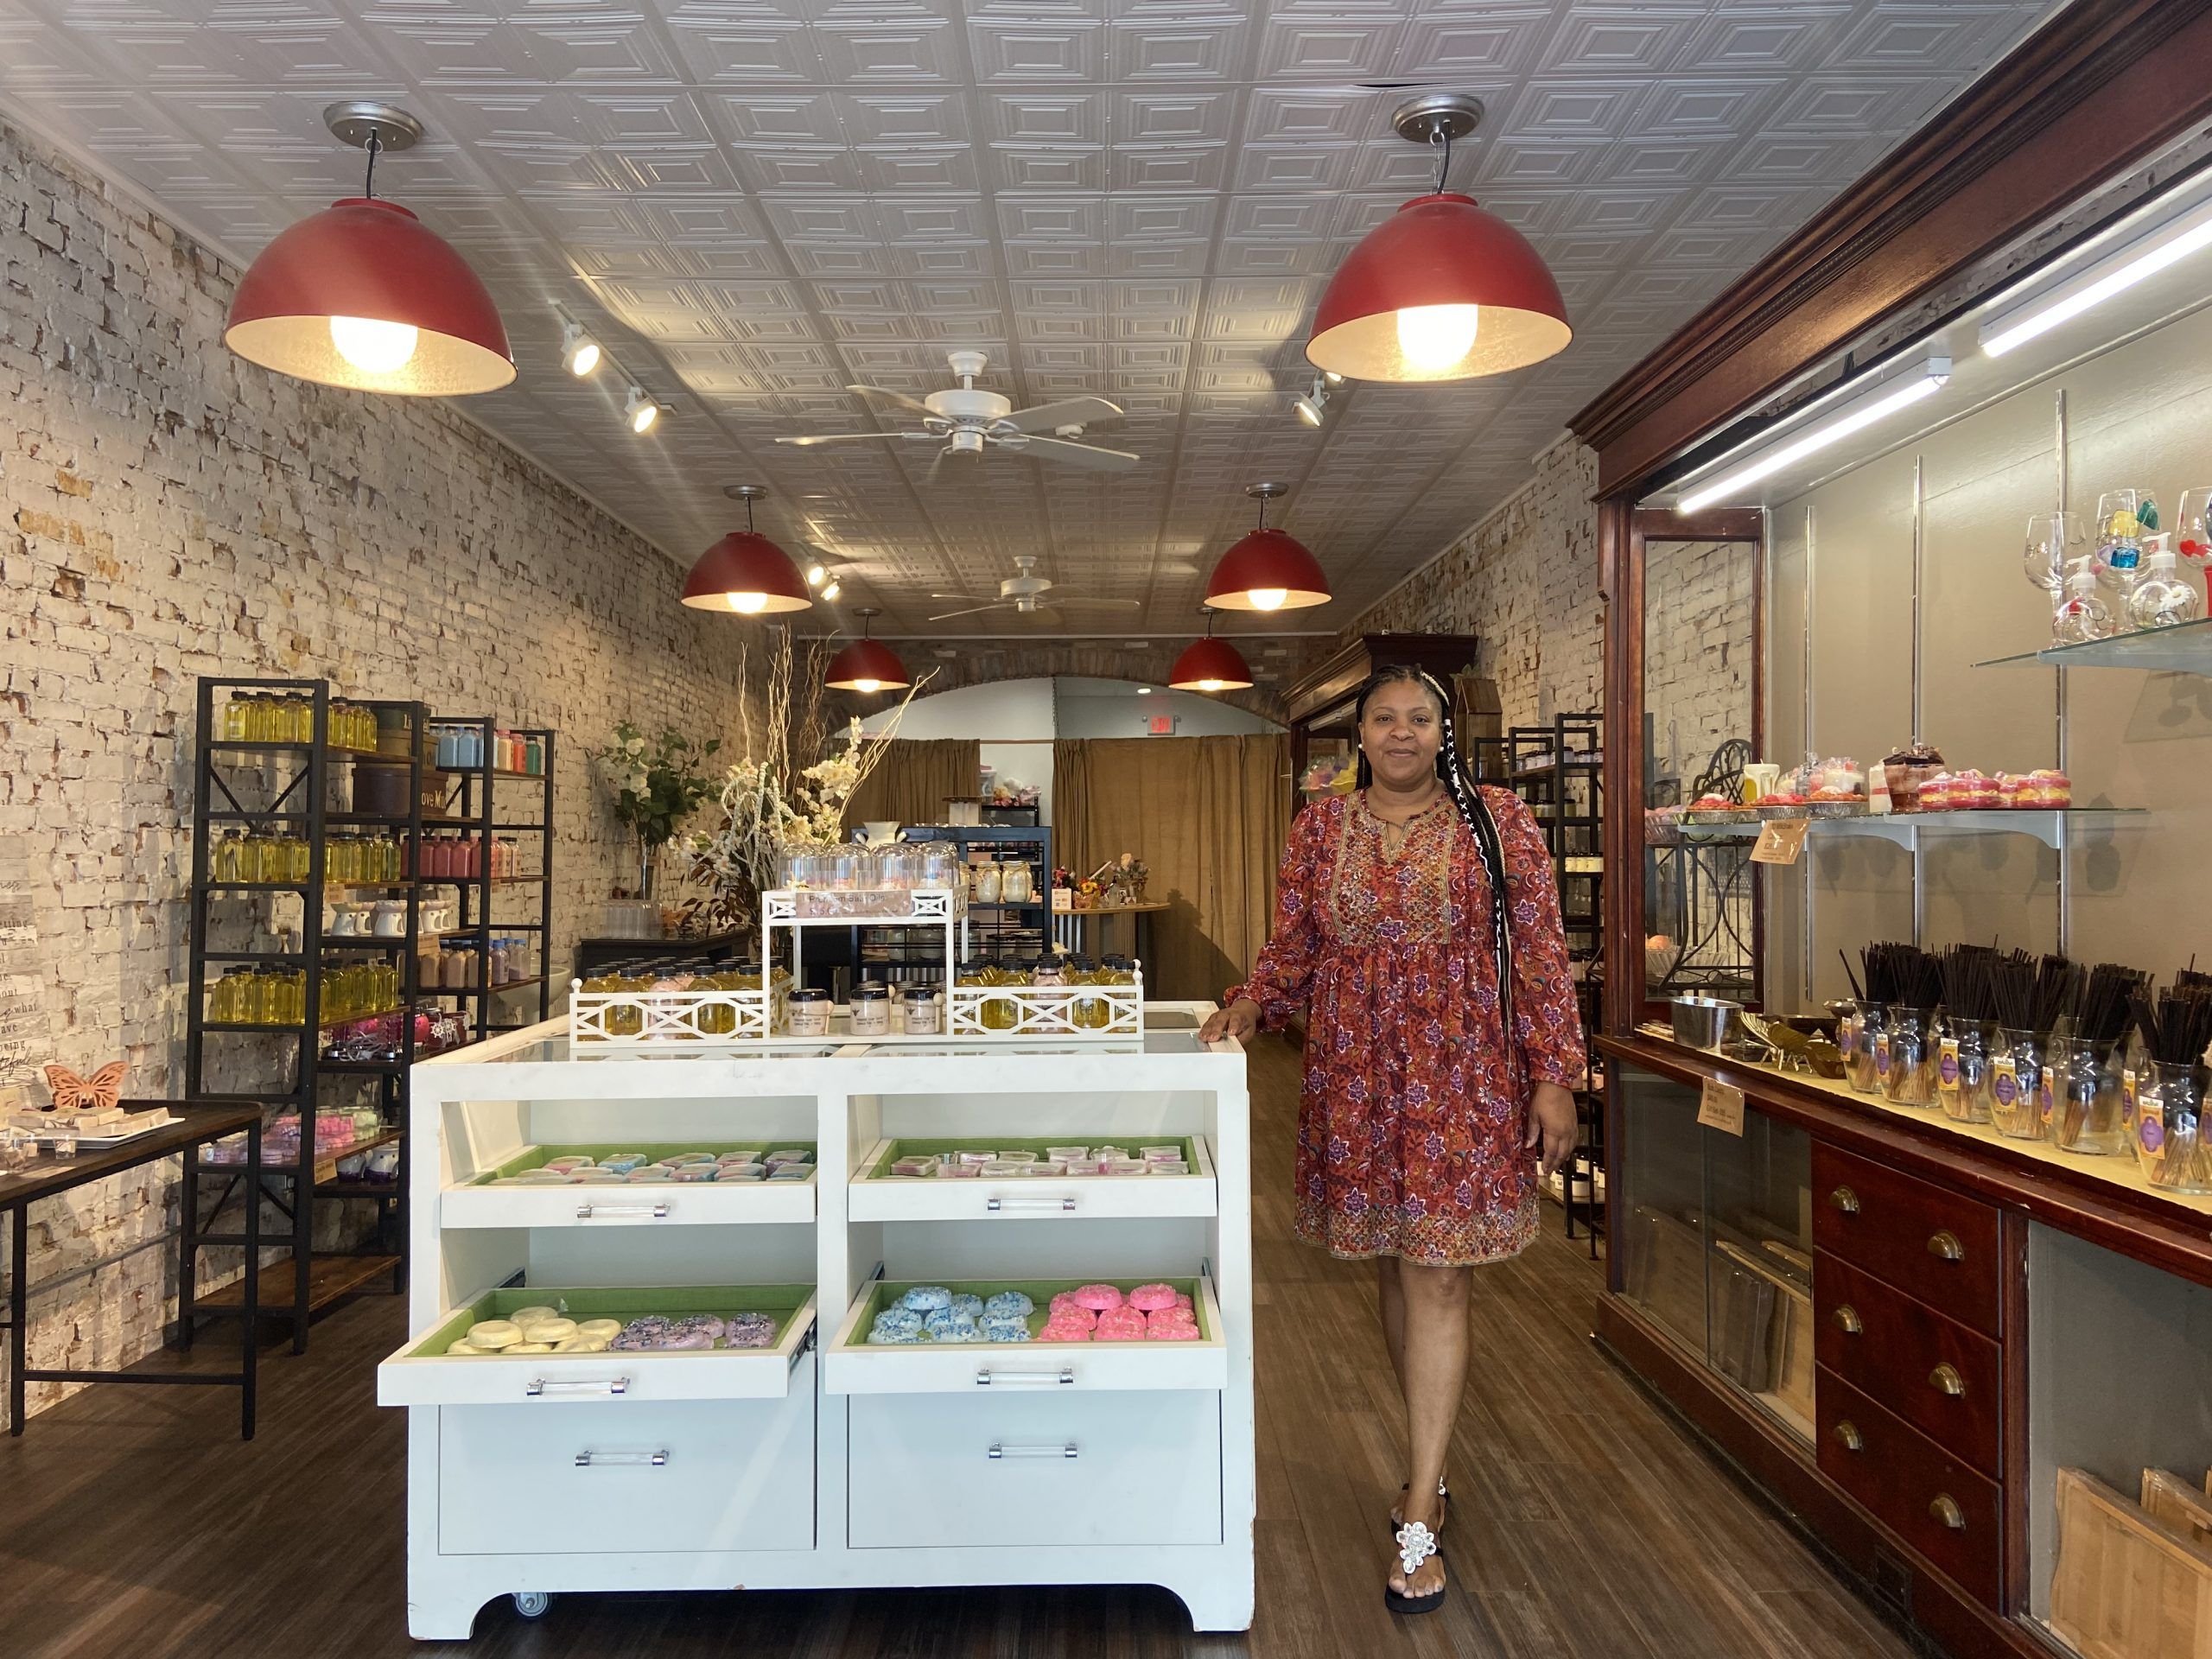 New shop brings scents, soaps to downtown Geneva